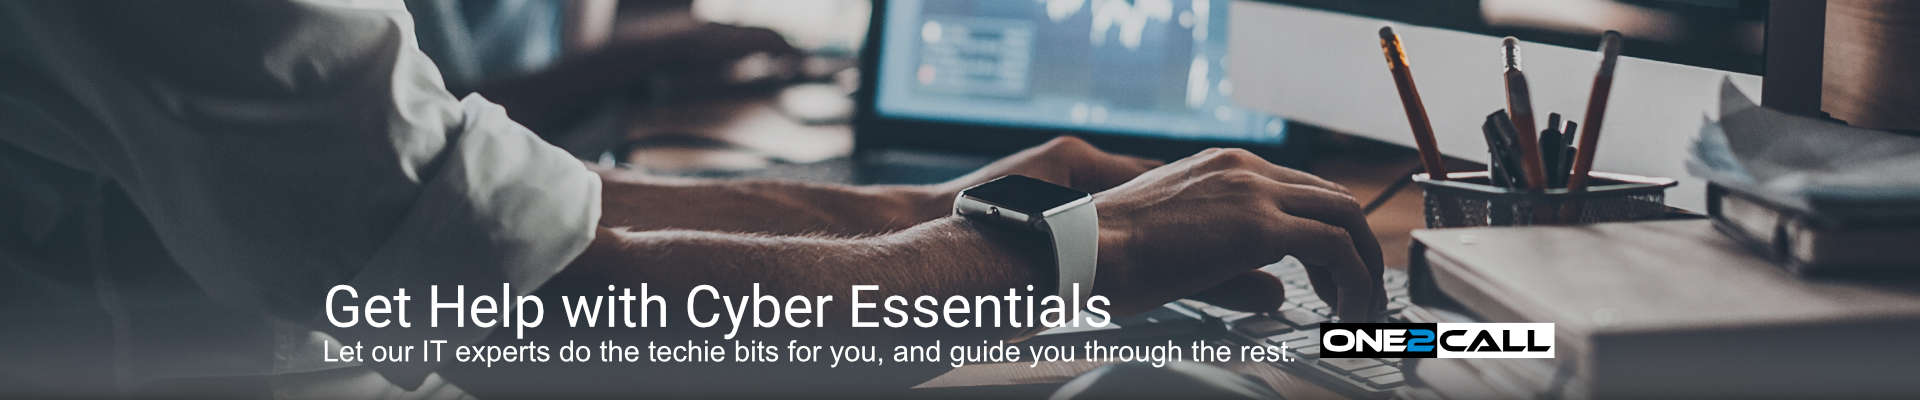 Get Help with Cyber Essentials Self-Assessment